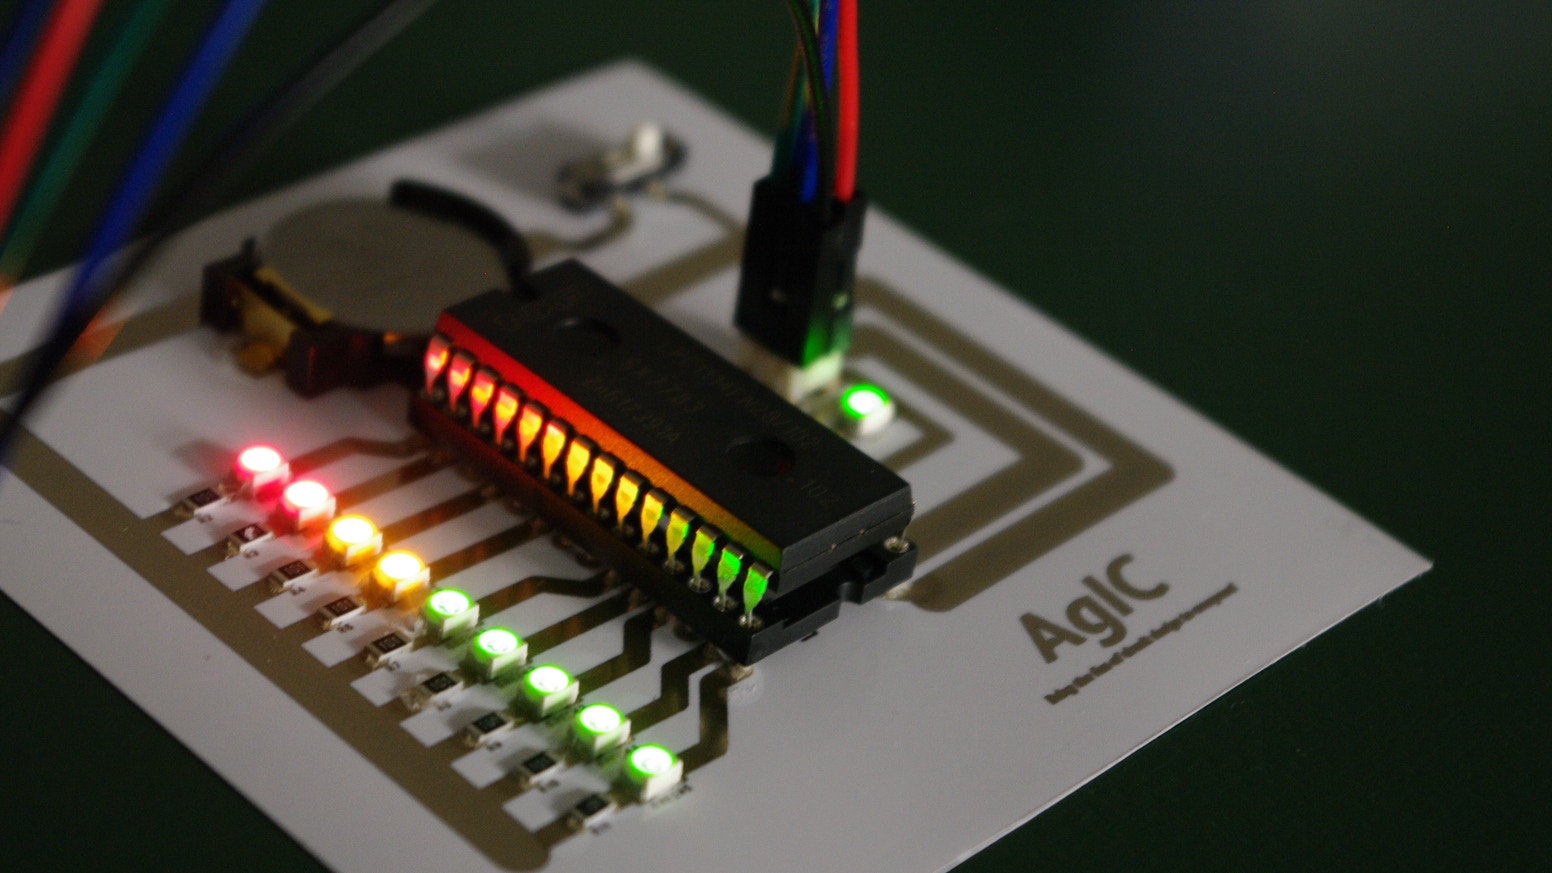 AgIC Print - Printing circuit boards with home printers by AgIC Inc ...